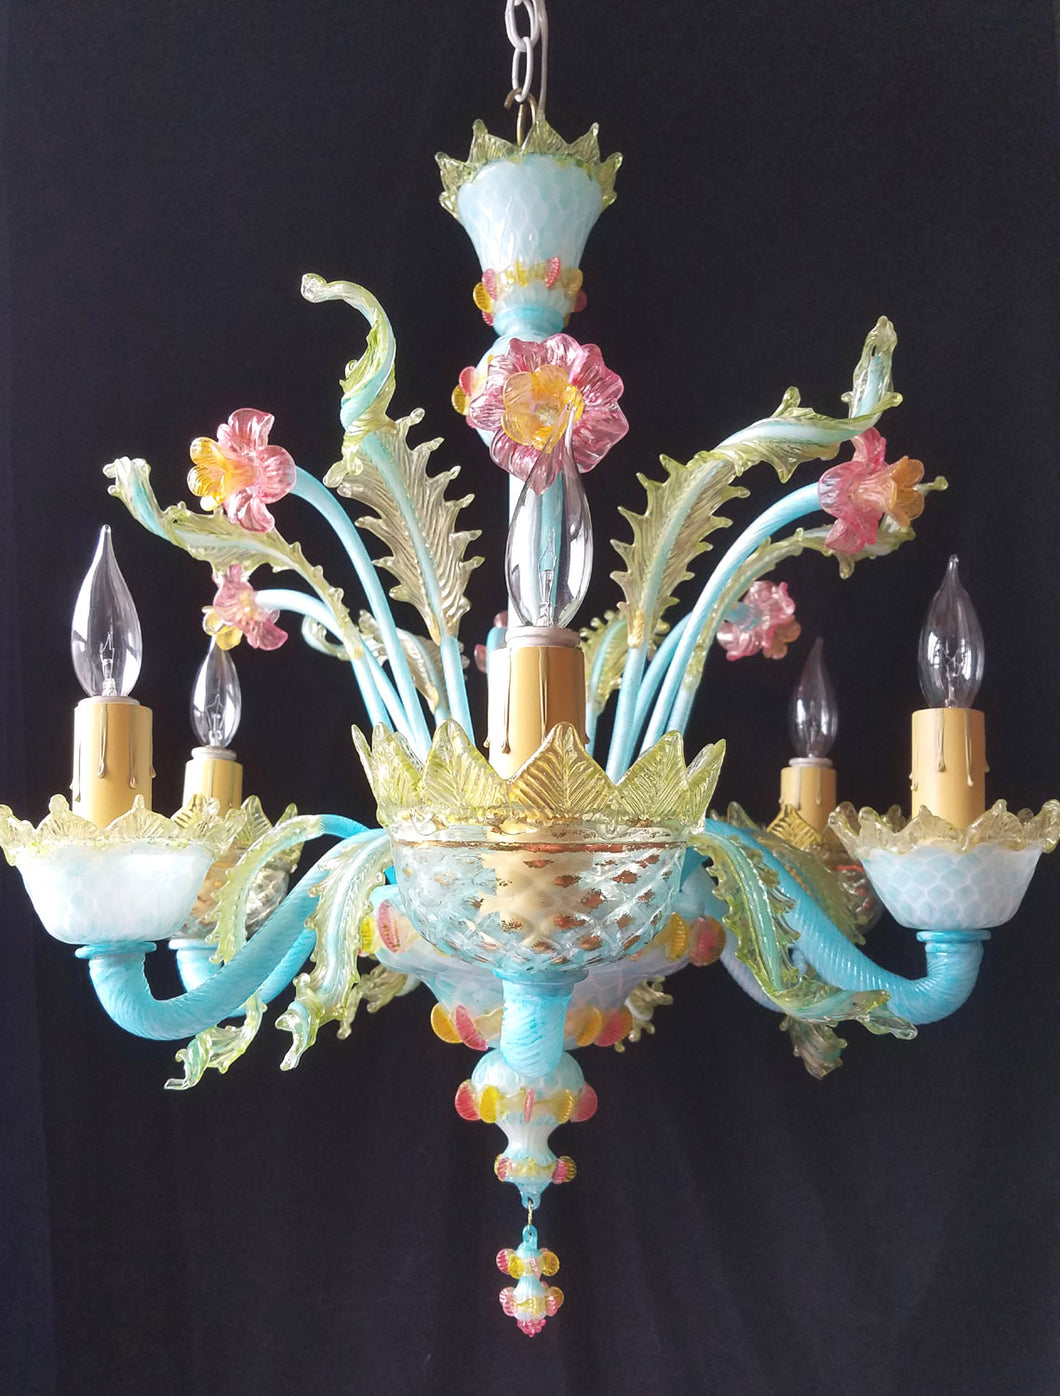 Vintage Murano Chandelier, Hand Colored with 24 Carat Gold Flecks, 25